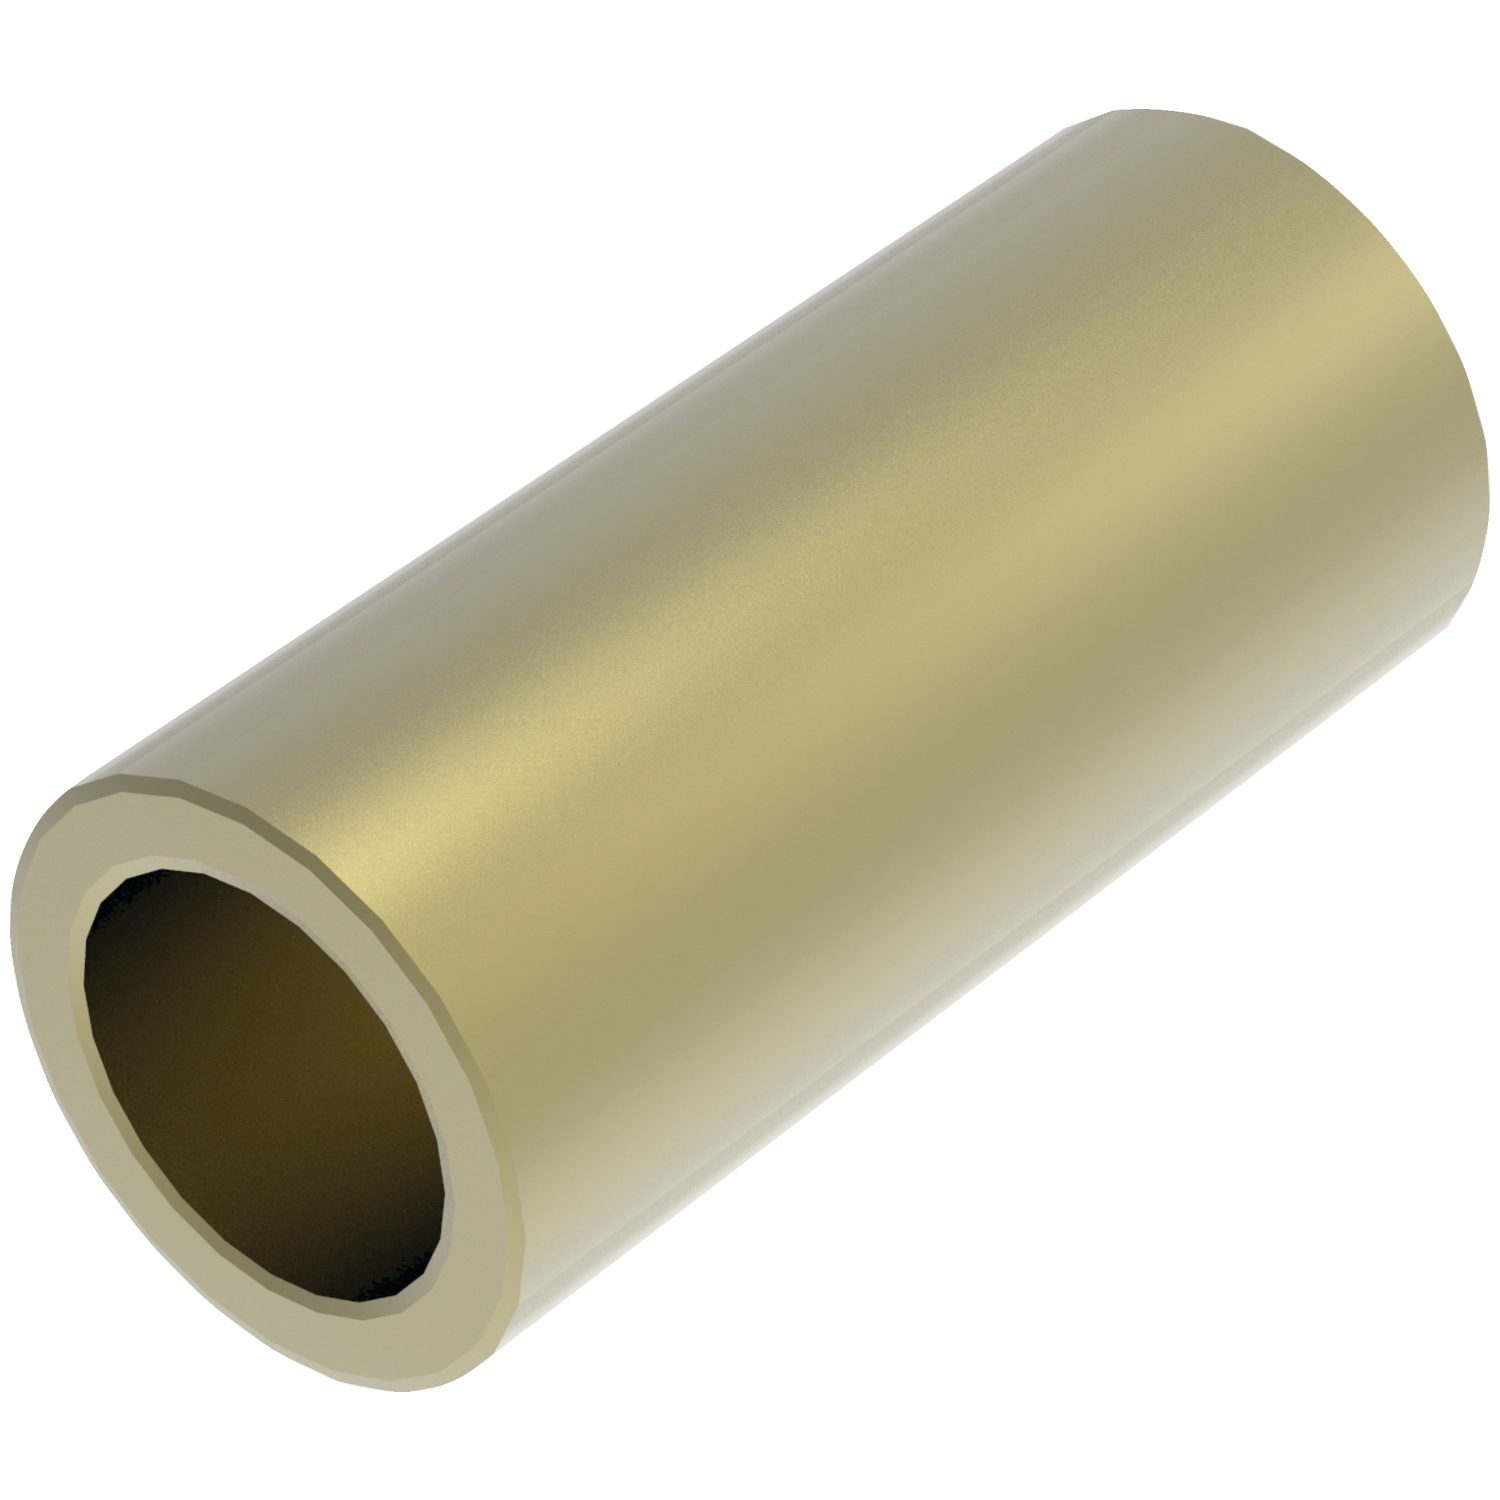 Cylindrical Spacers